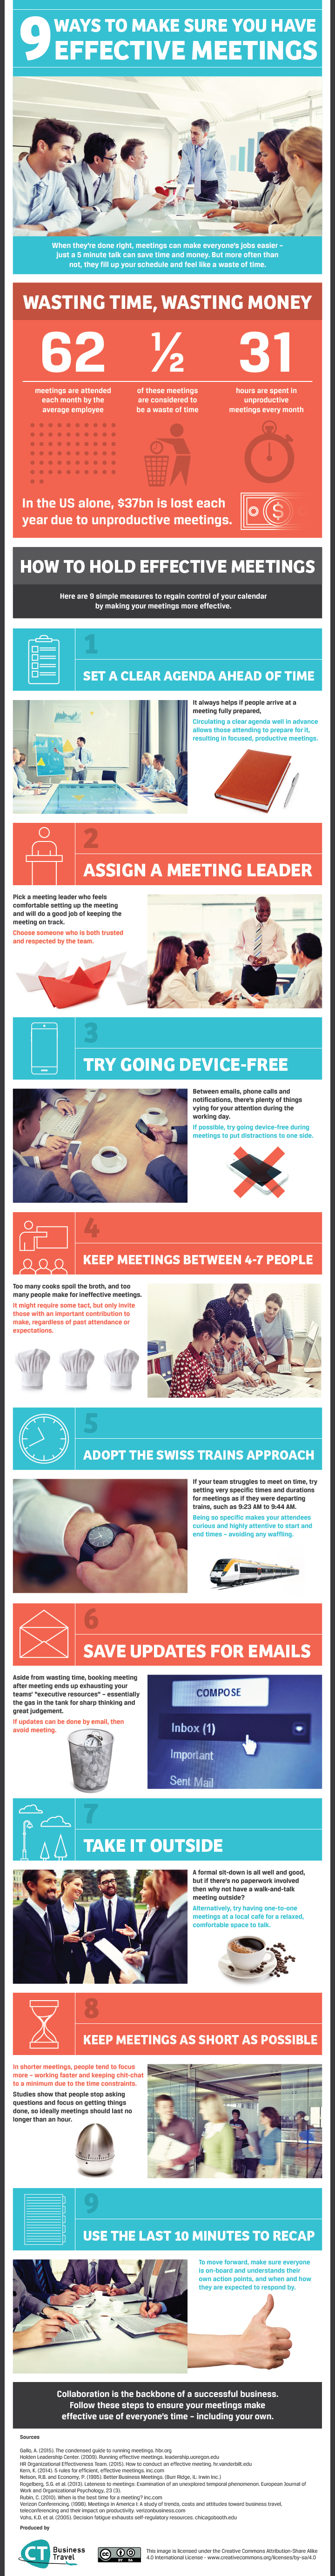 9-ways-to-make-sure-you-have-effective-meetings